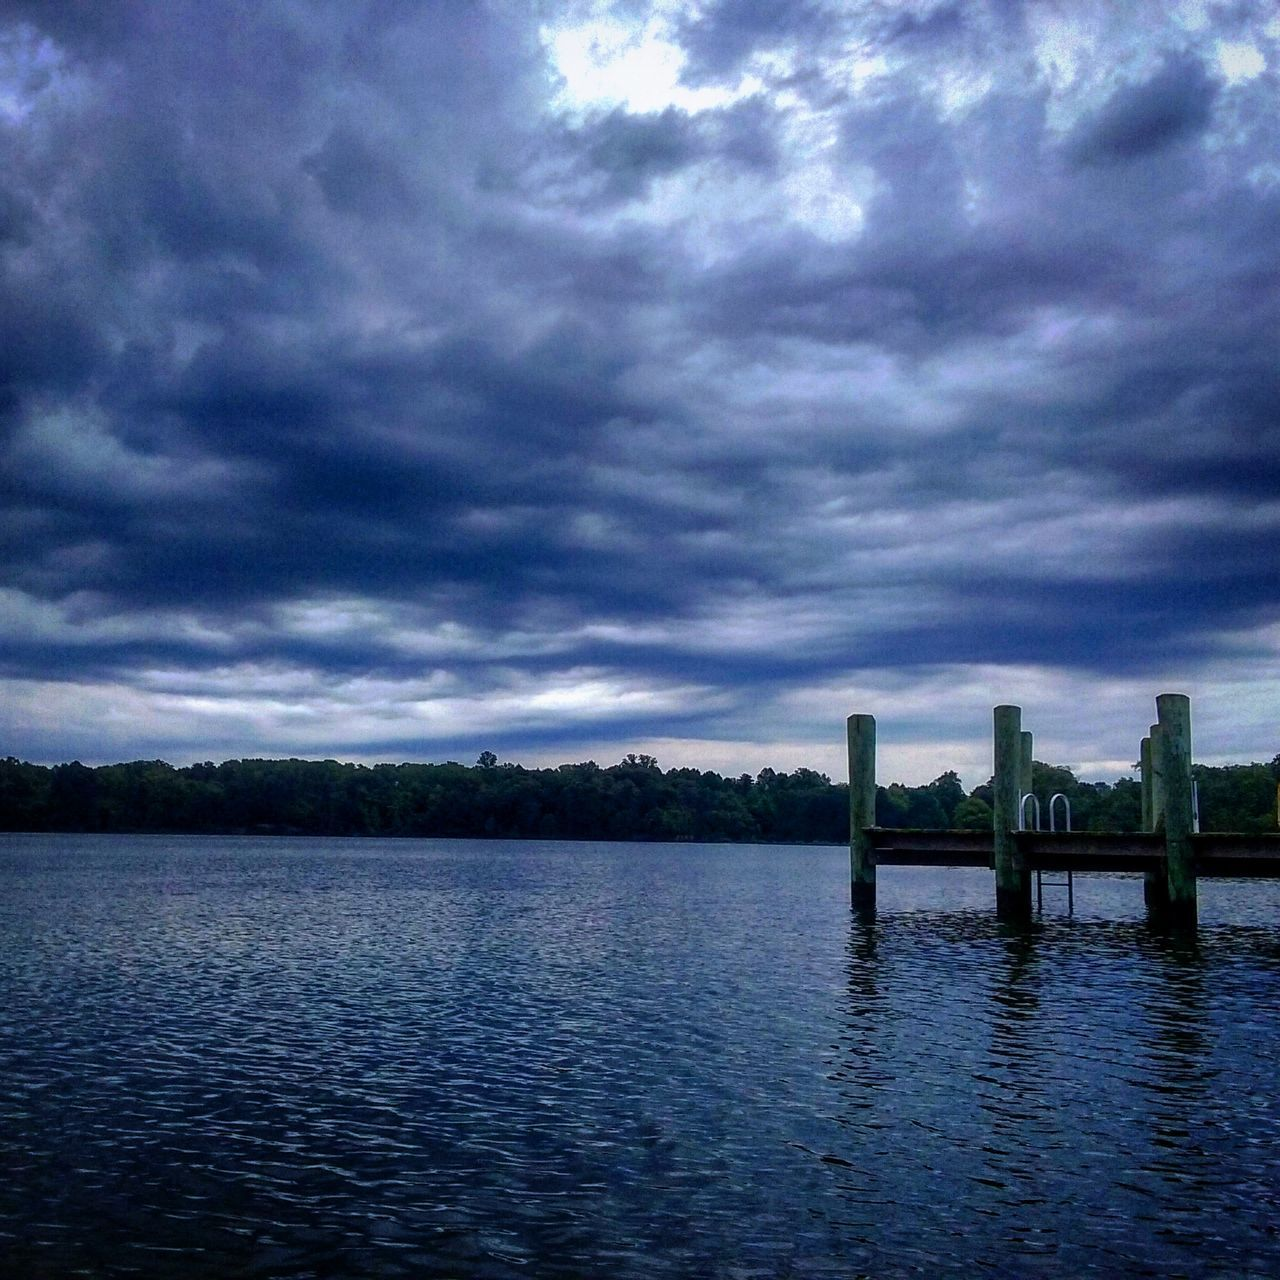 cloud - sky, sky, water, nature, weather, no people, outdoors, built structure, tranquility, waterfront, scenics, beauty in nature, lake, architecture, tree, day, storm cloud